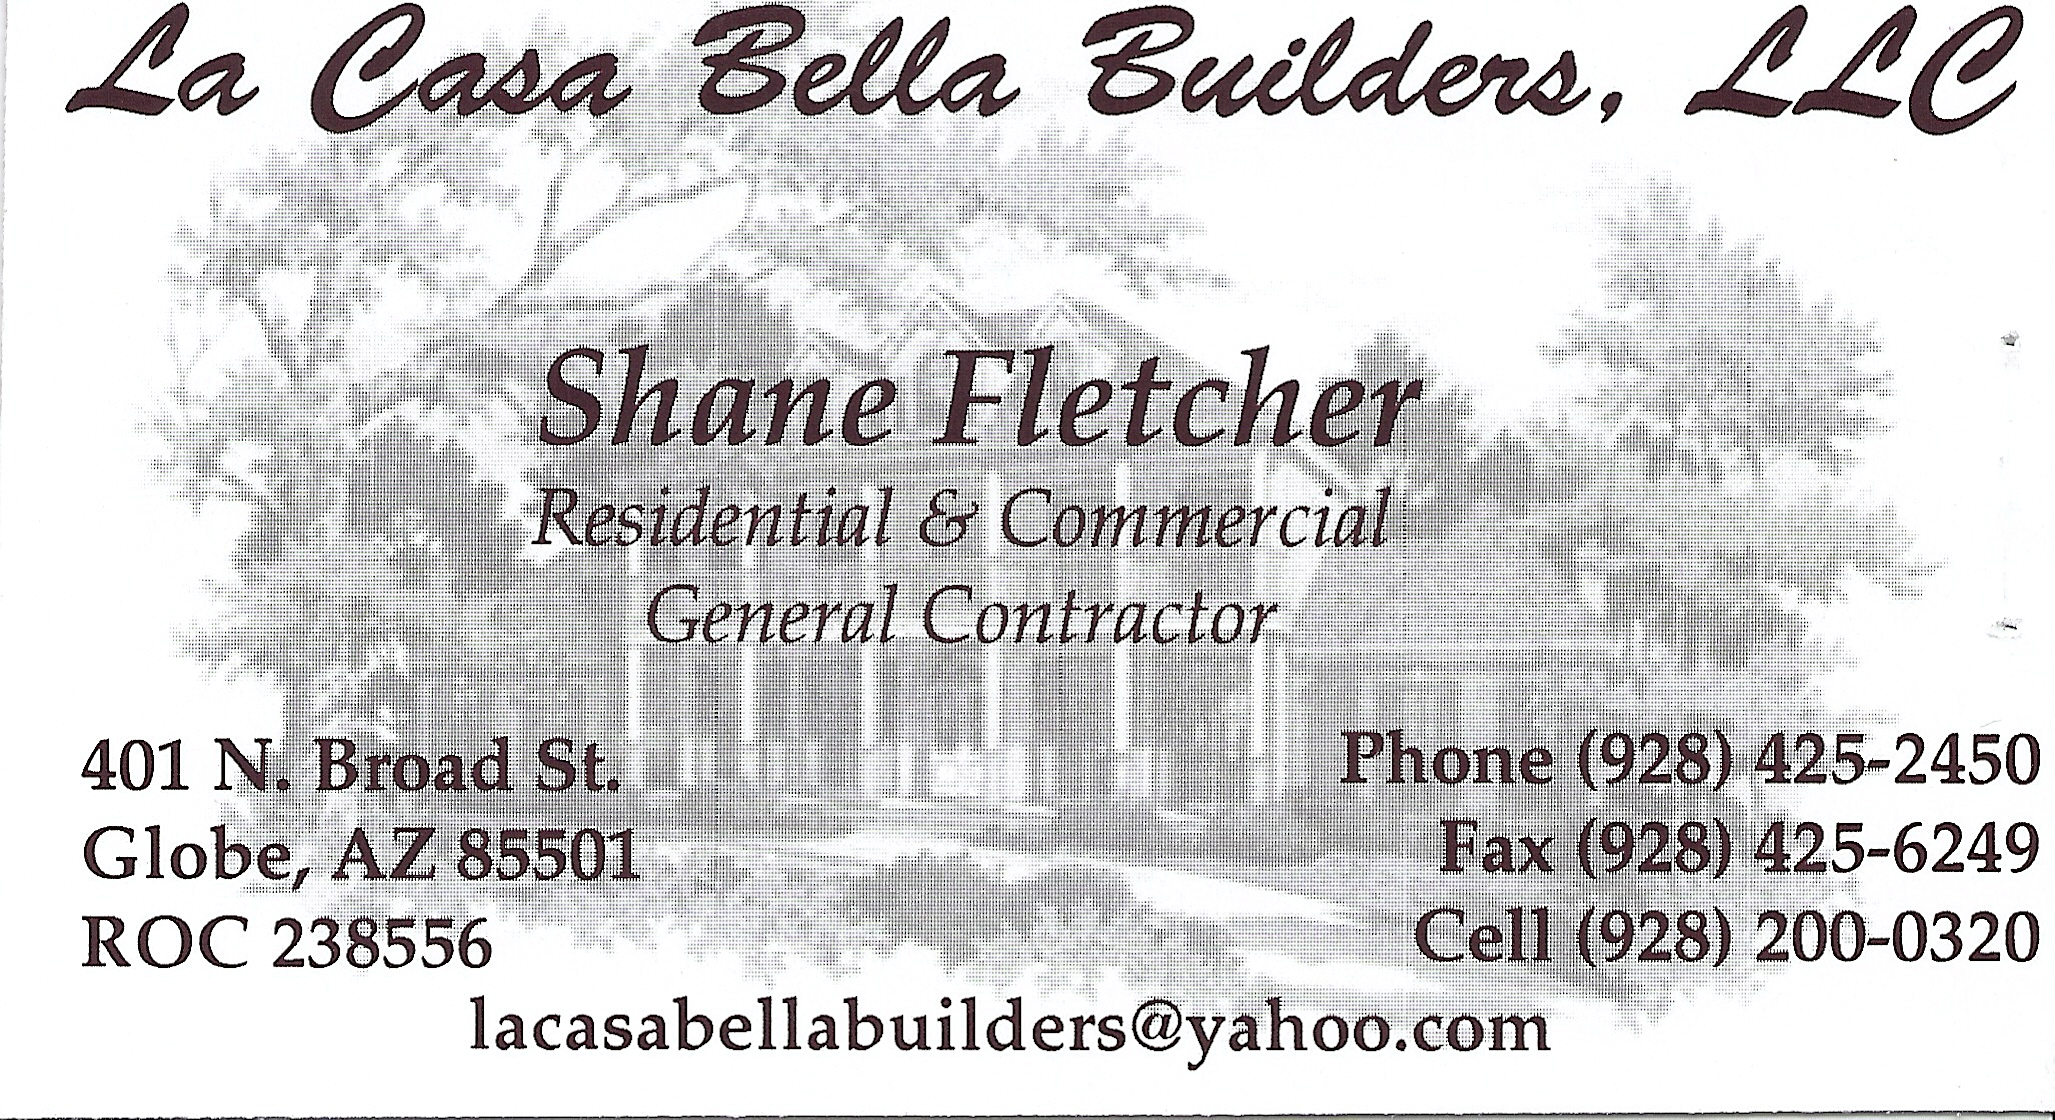 La Casa Bella Builders